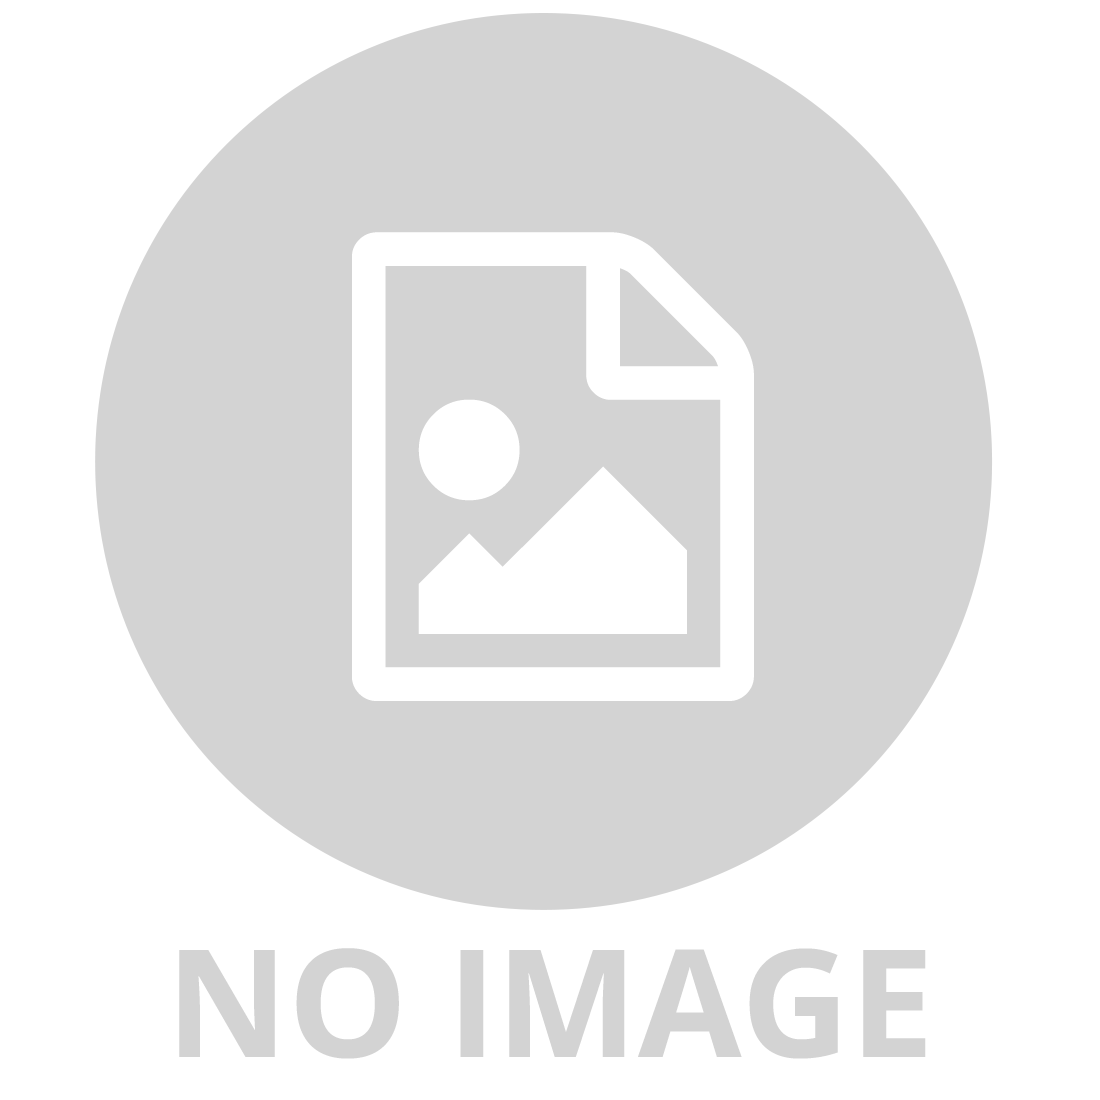 CAT METAL MACHINES DIE CAST 797F DUMP TRUCK 1:101 SCALE